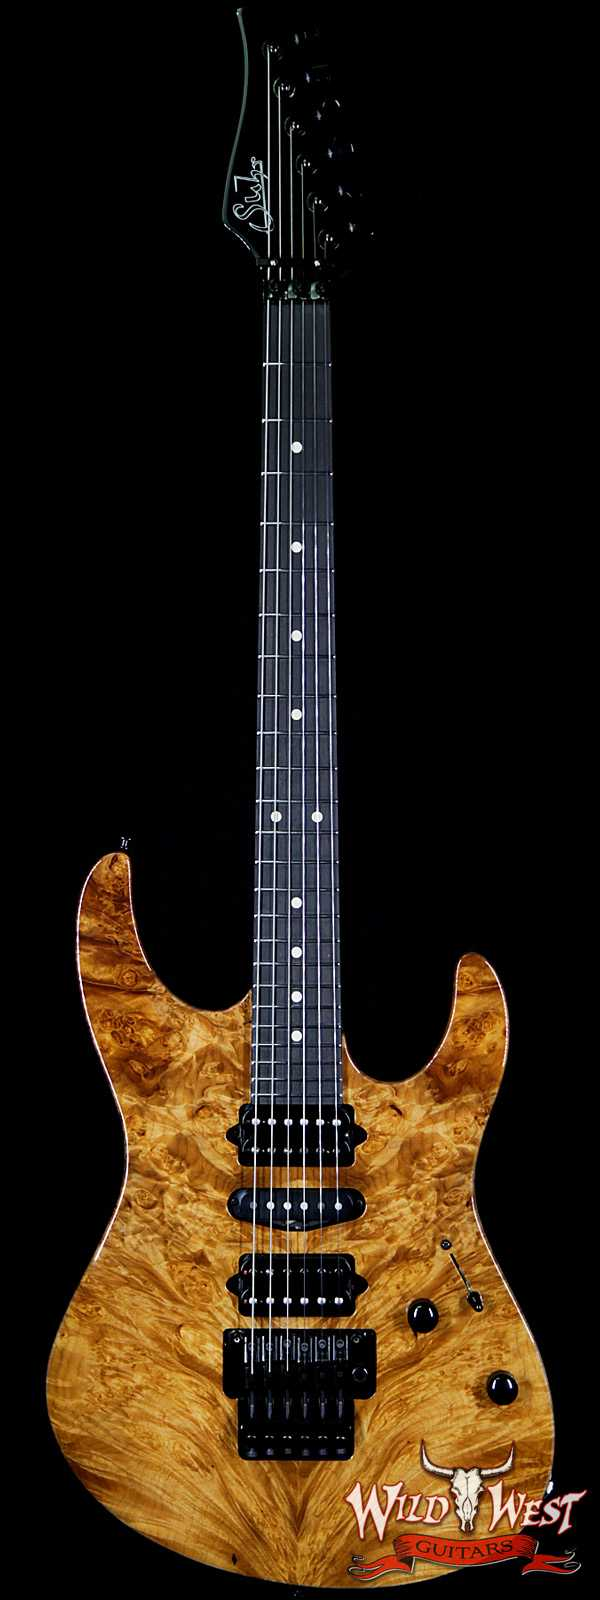 Suhr Modern HSH Floyd Hand Selected Burl Maple Top Roasted Maple Neck Ebony Fingerboard Reverse Head Natural